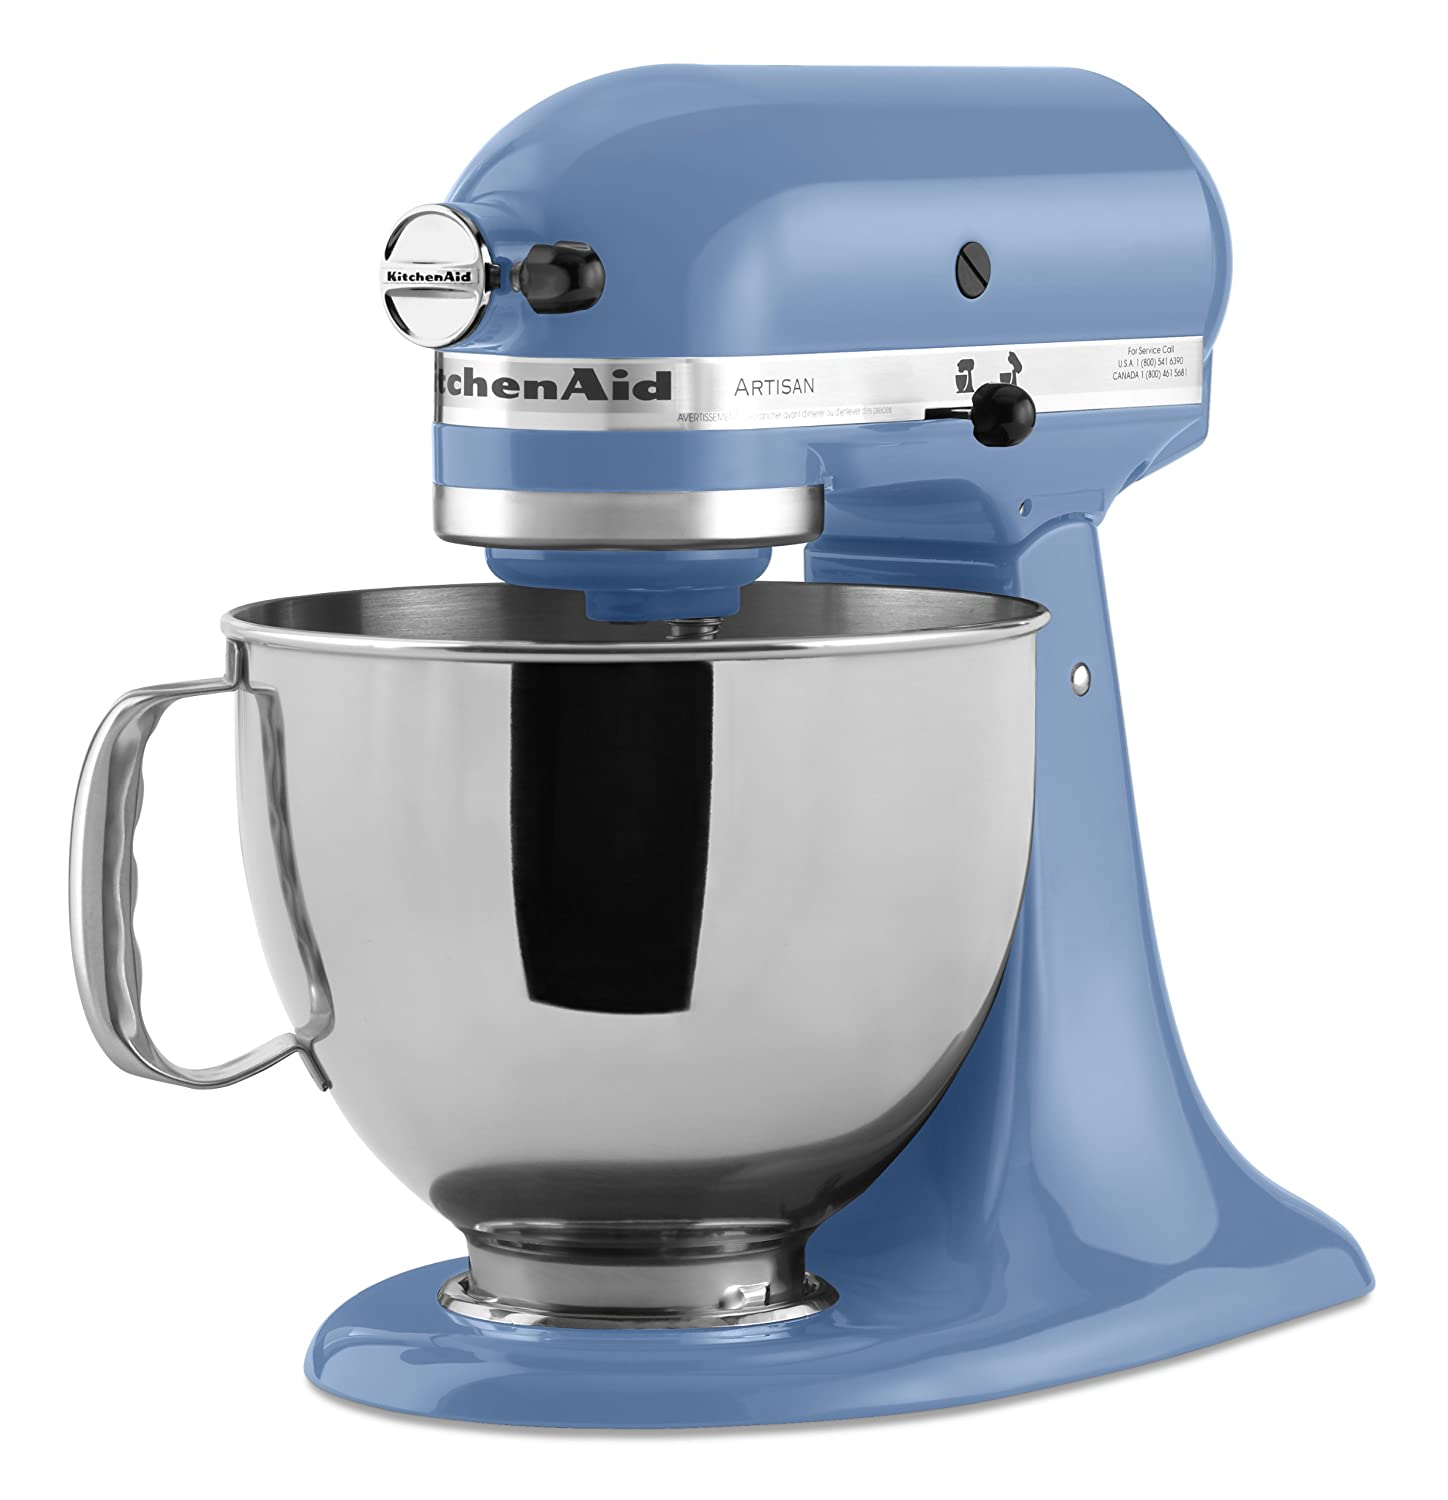 Beautiful Amazon.com: KitchenAid KSM150PSCO Artisan Series 5 Qt. Stand Mixer With  Pouring Shield   Cornflower Blue: Electric Stand Mixers: Kitchen U0026 Dining